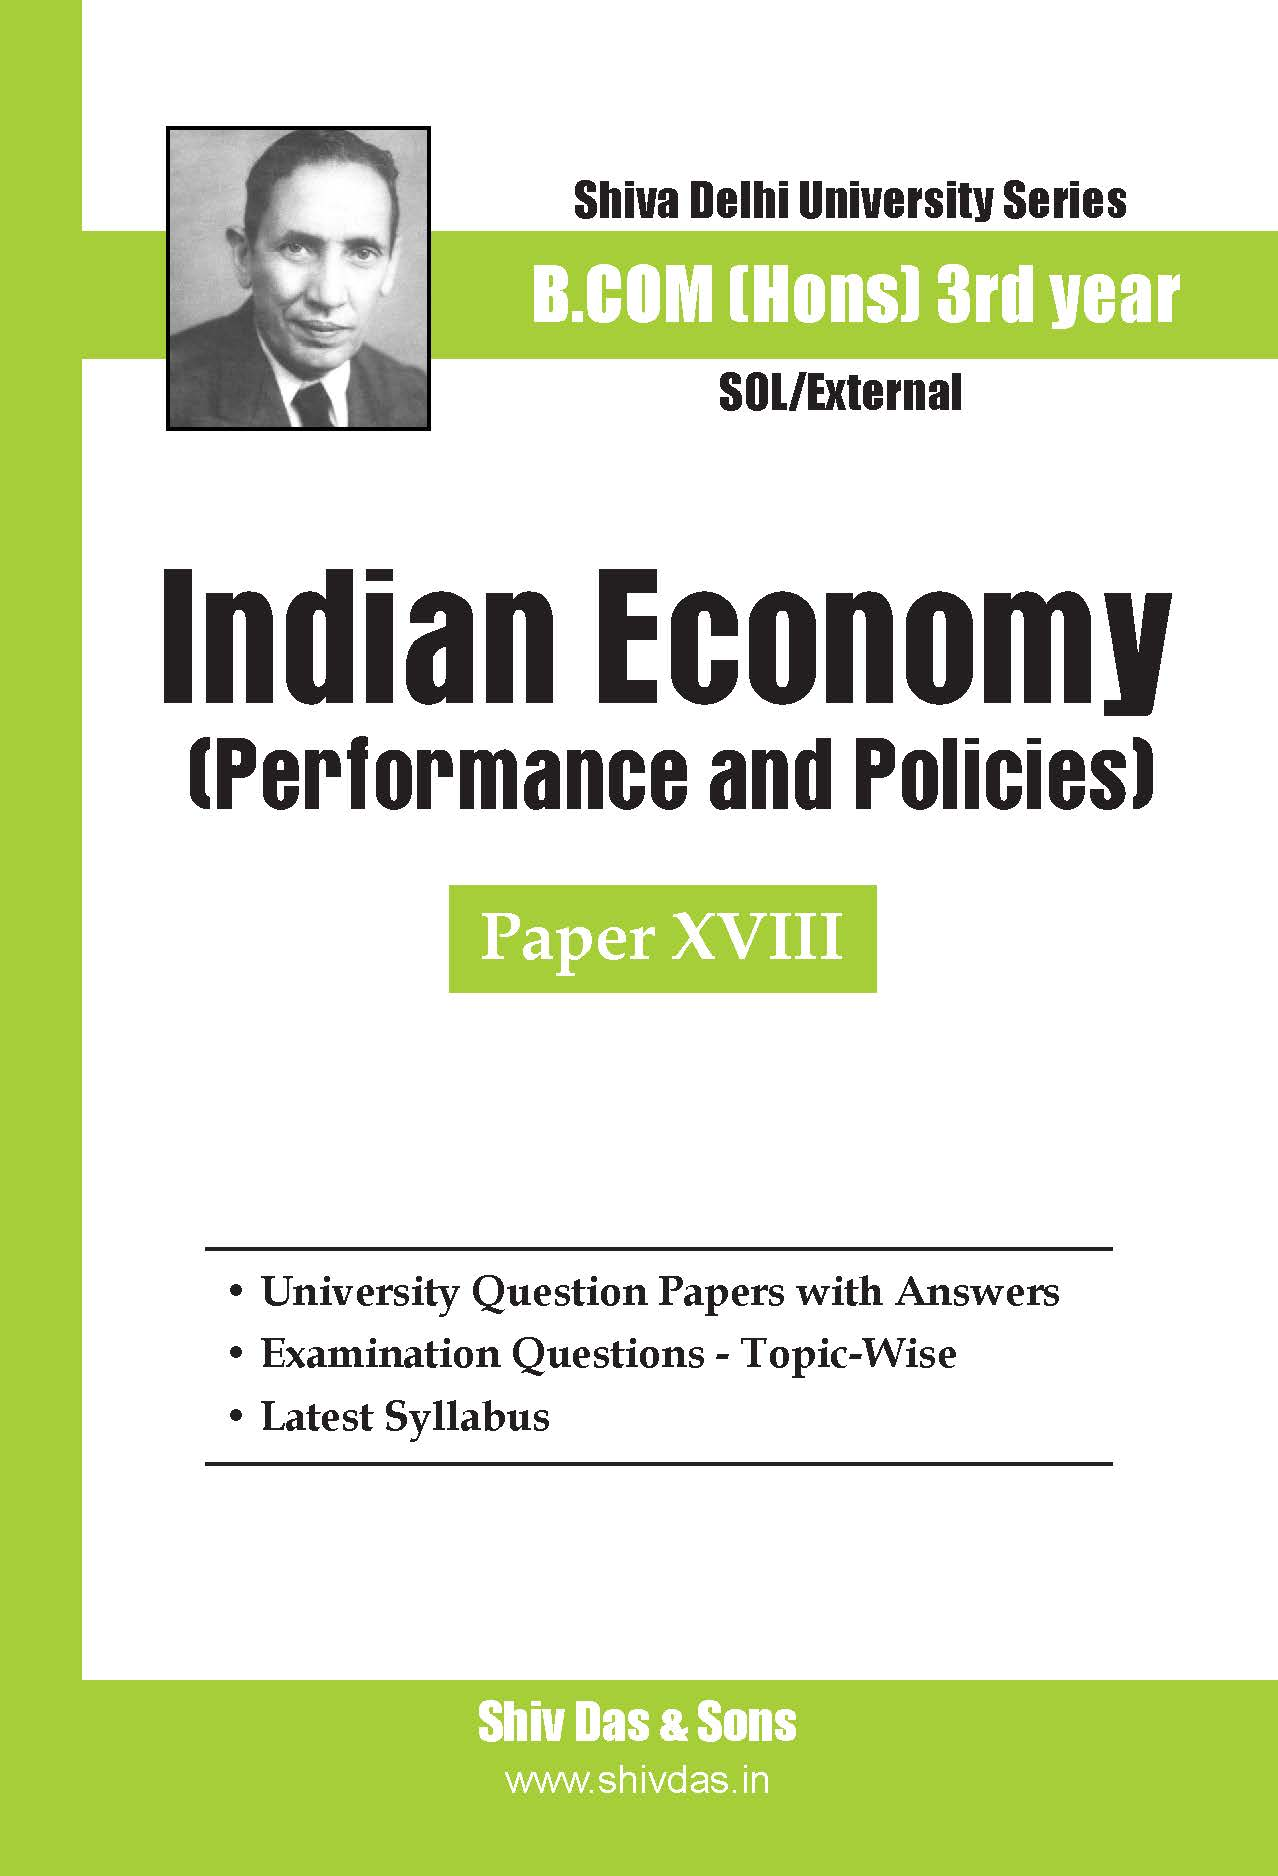 B.Com Hons-SOL/External-3rd Year-Indian Economy-Shiv Das-Delhi University Series